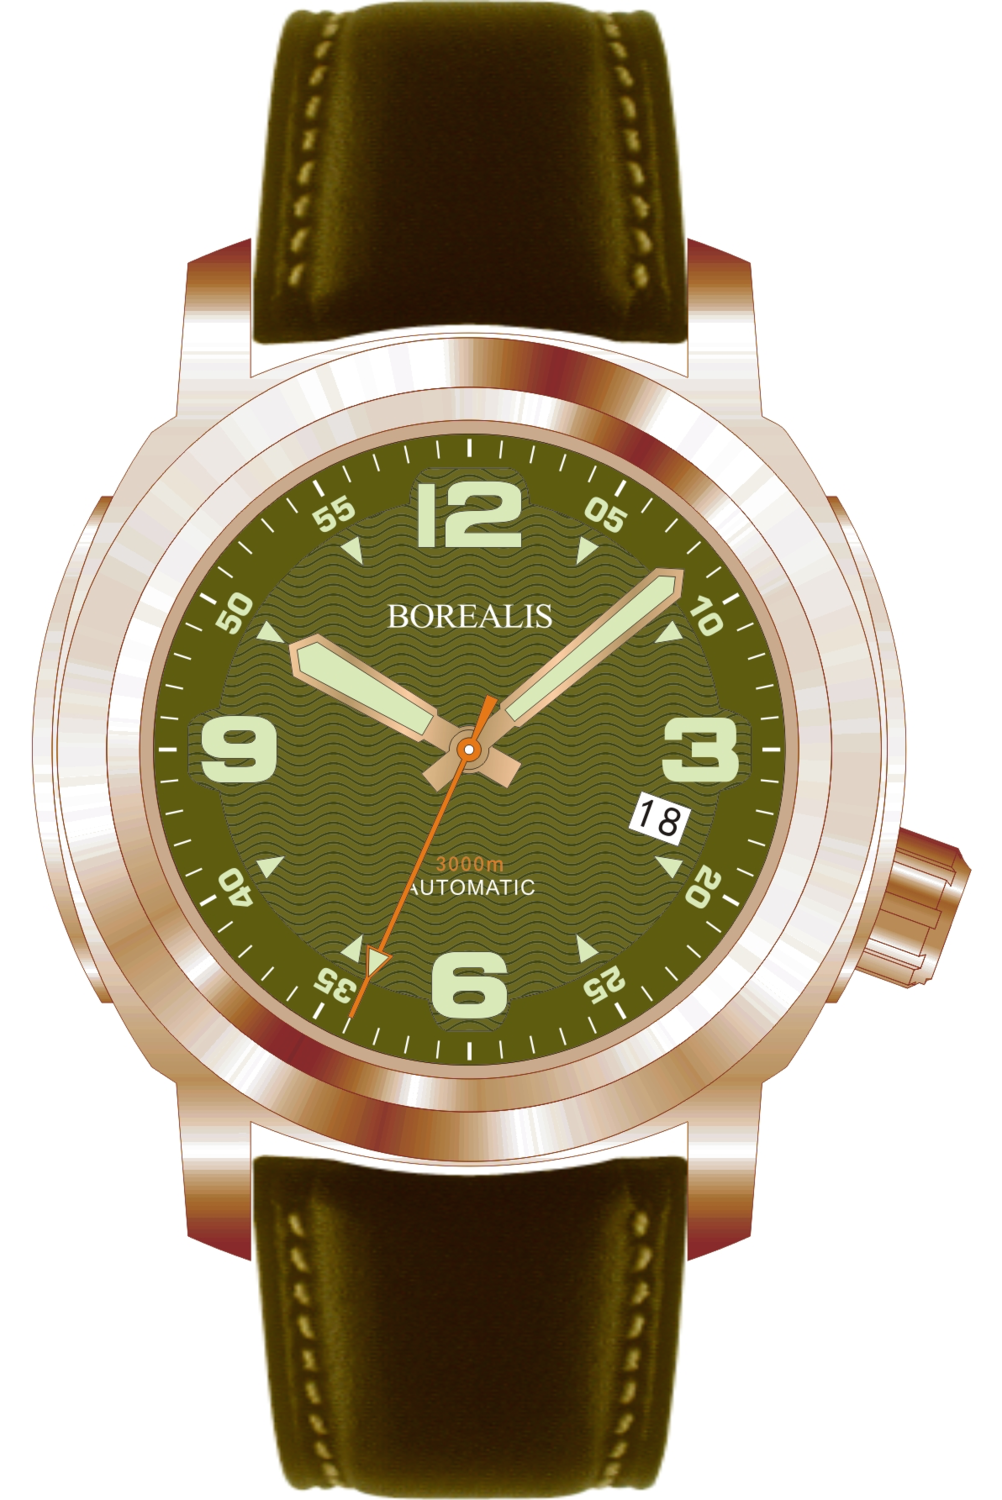 Borealis Batial Bronze CuSn8 Green 3000m Miyota 9015 Automatic Diver Watch With Date Display